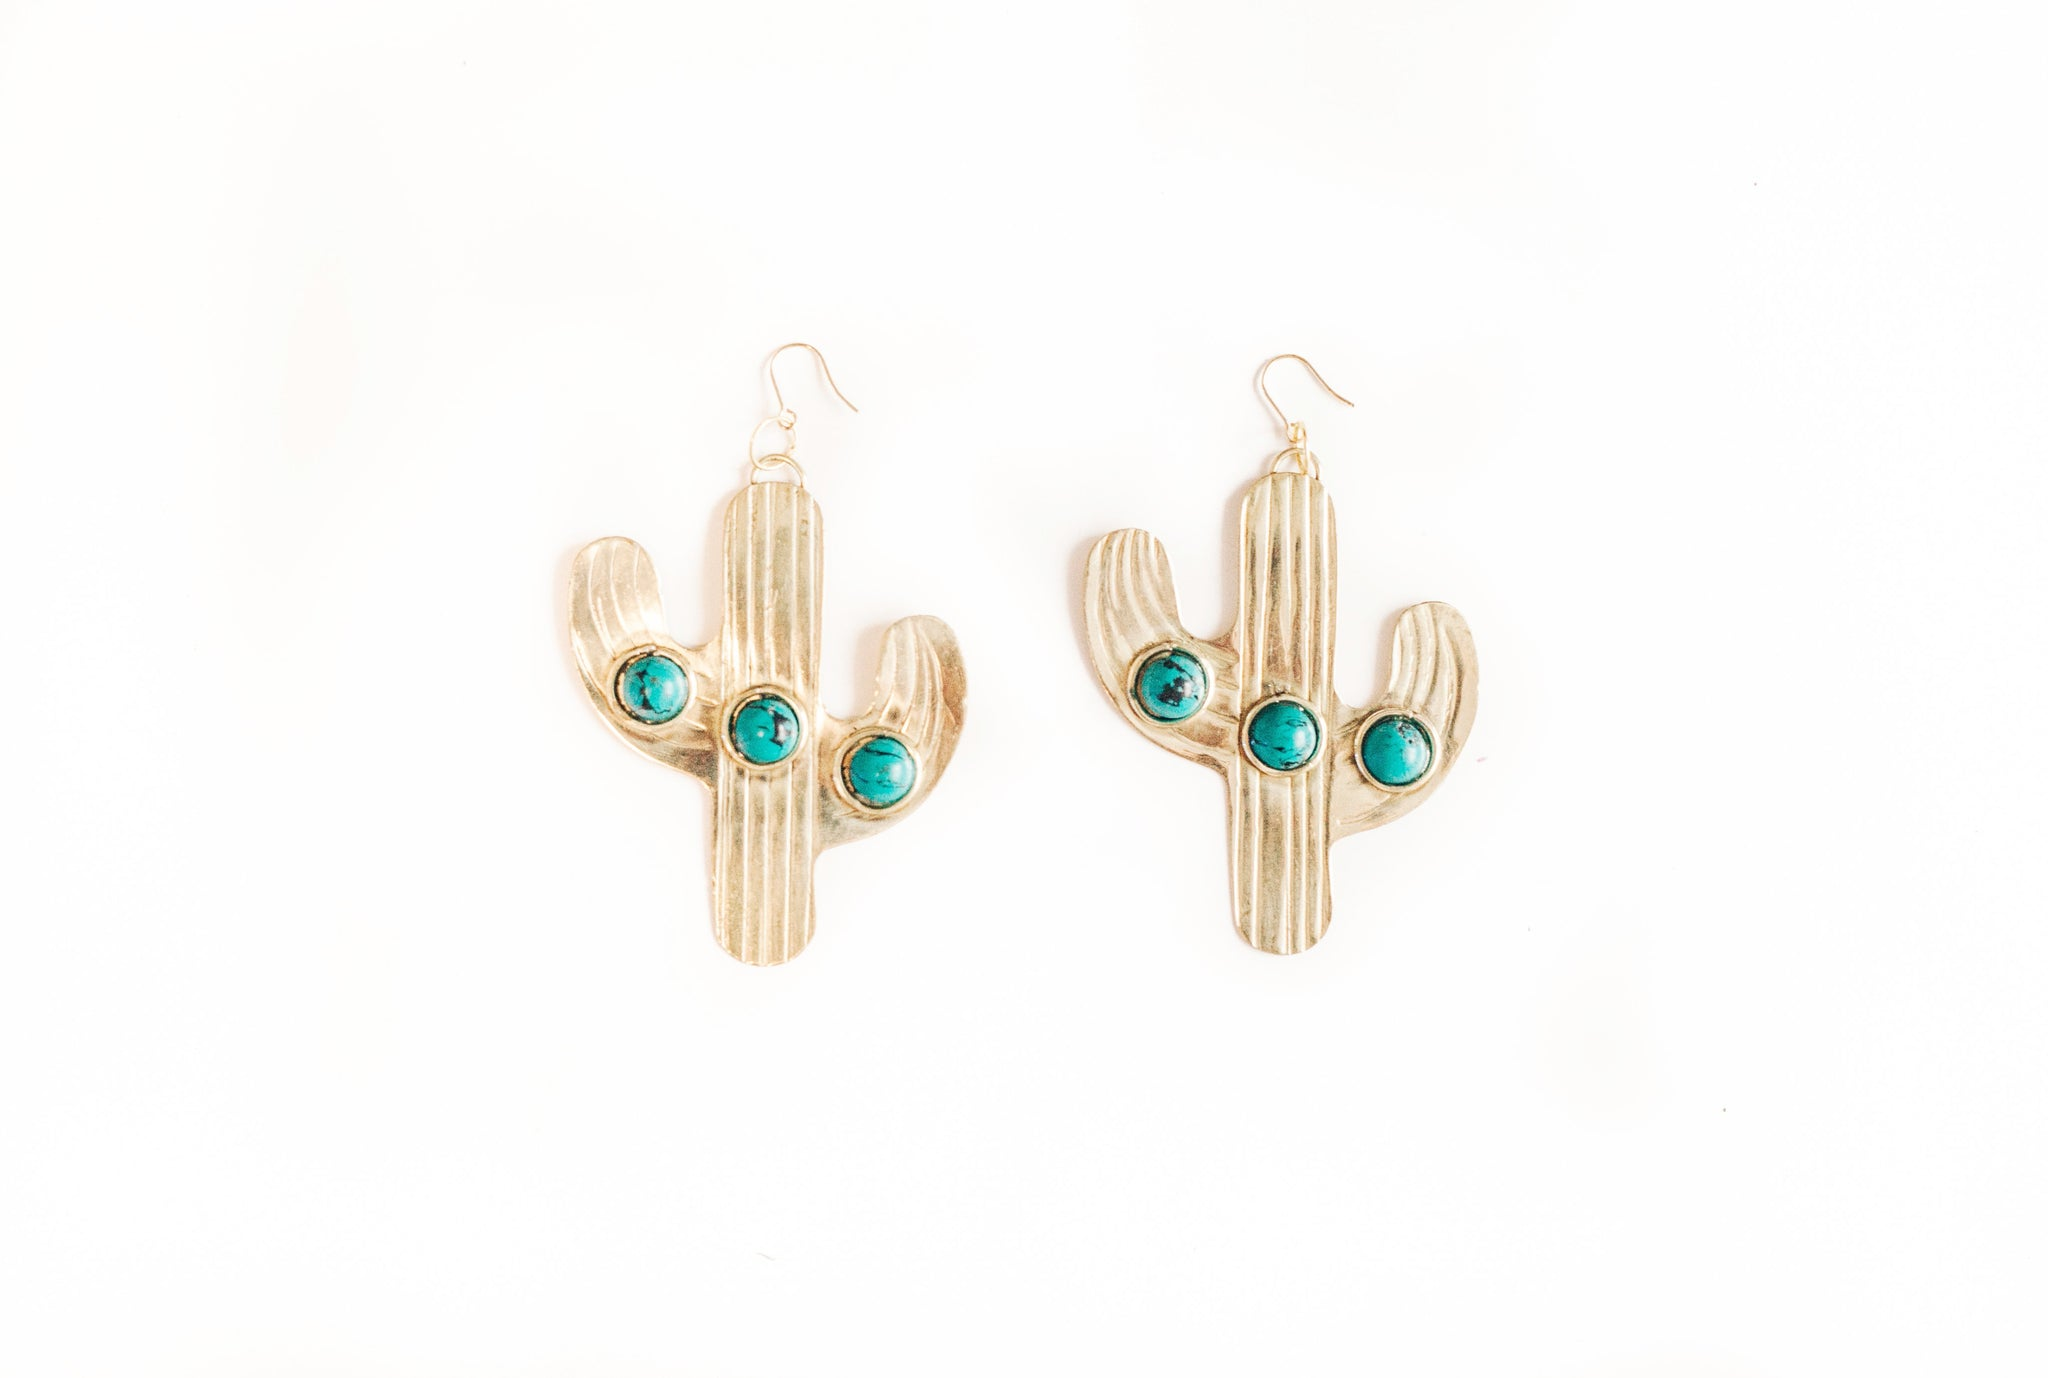 Cactus Earrings | Turquoise Earrings | Desert Rose Earrings